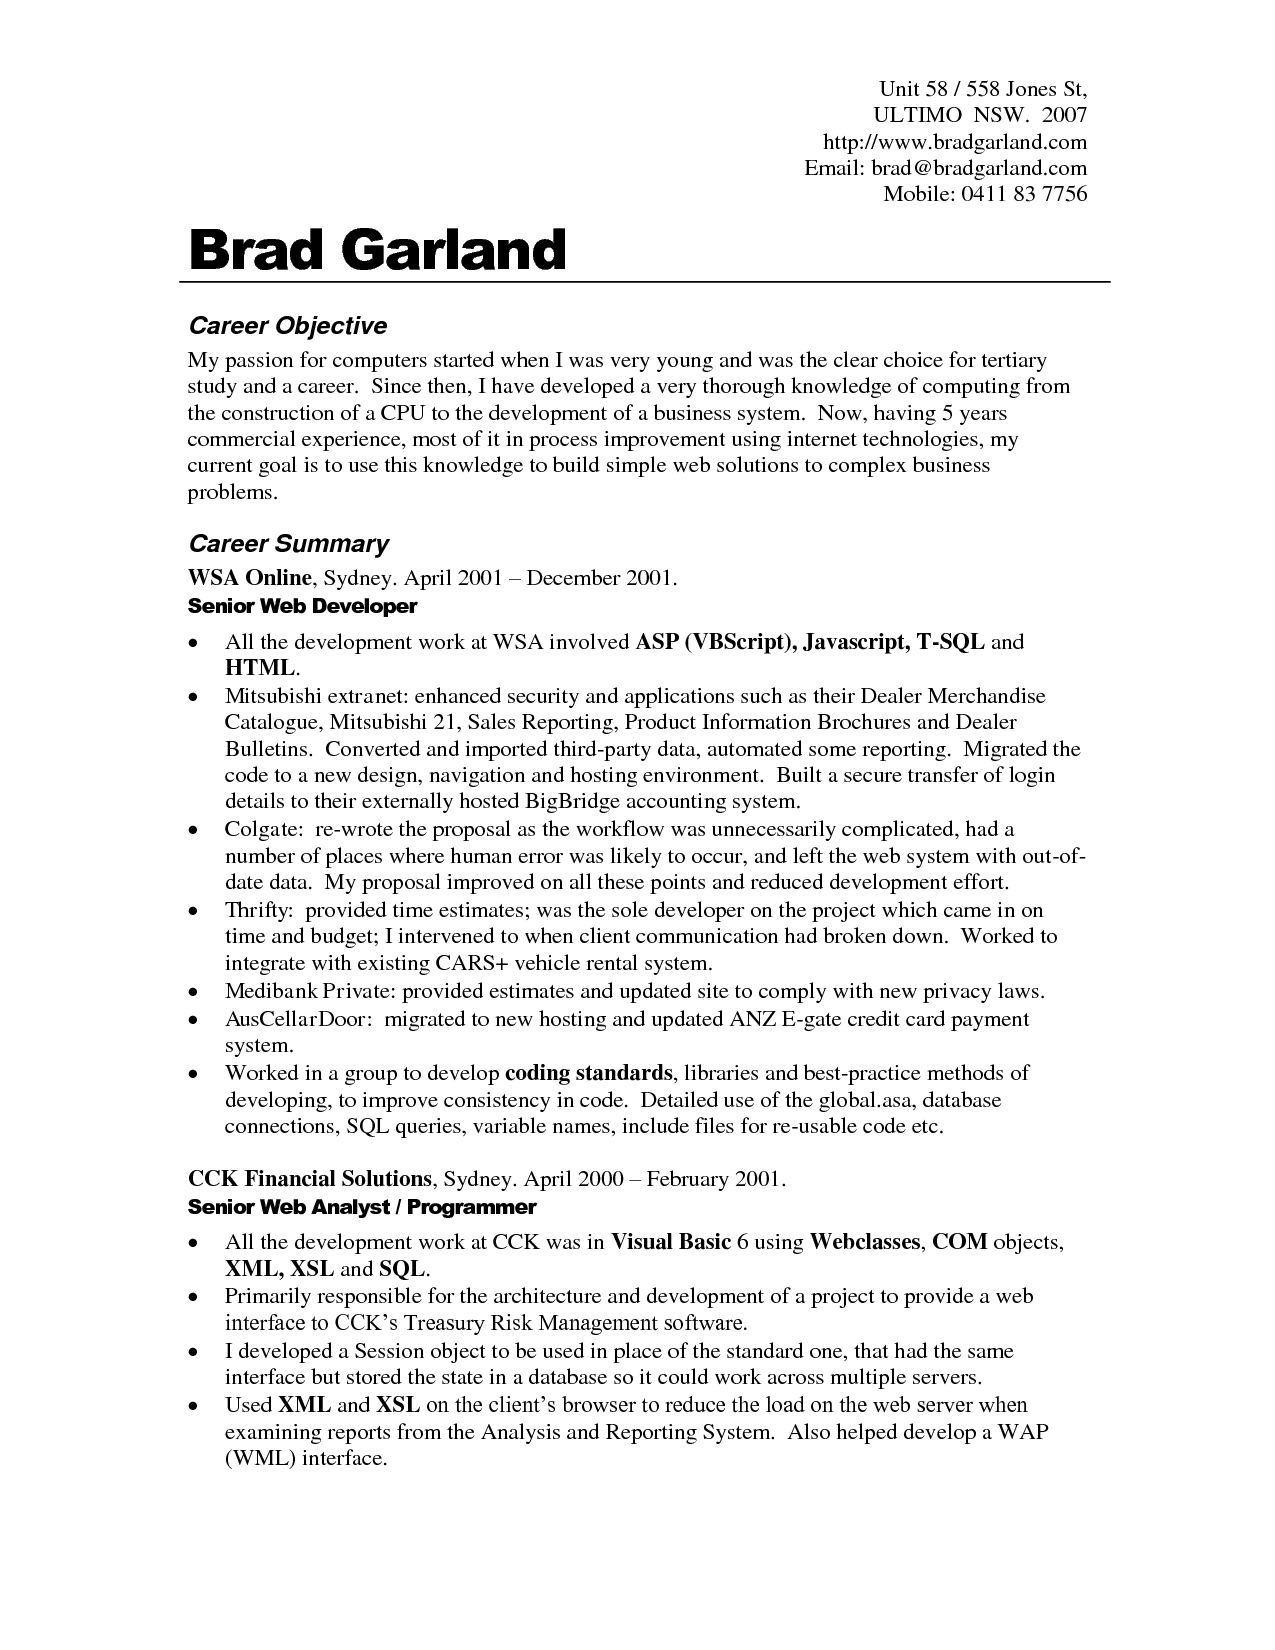 Example Of An Objective On A Resume Prepossessing Resume Examples Job Objective  Sample Resume Entry Level And .